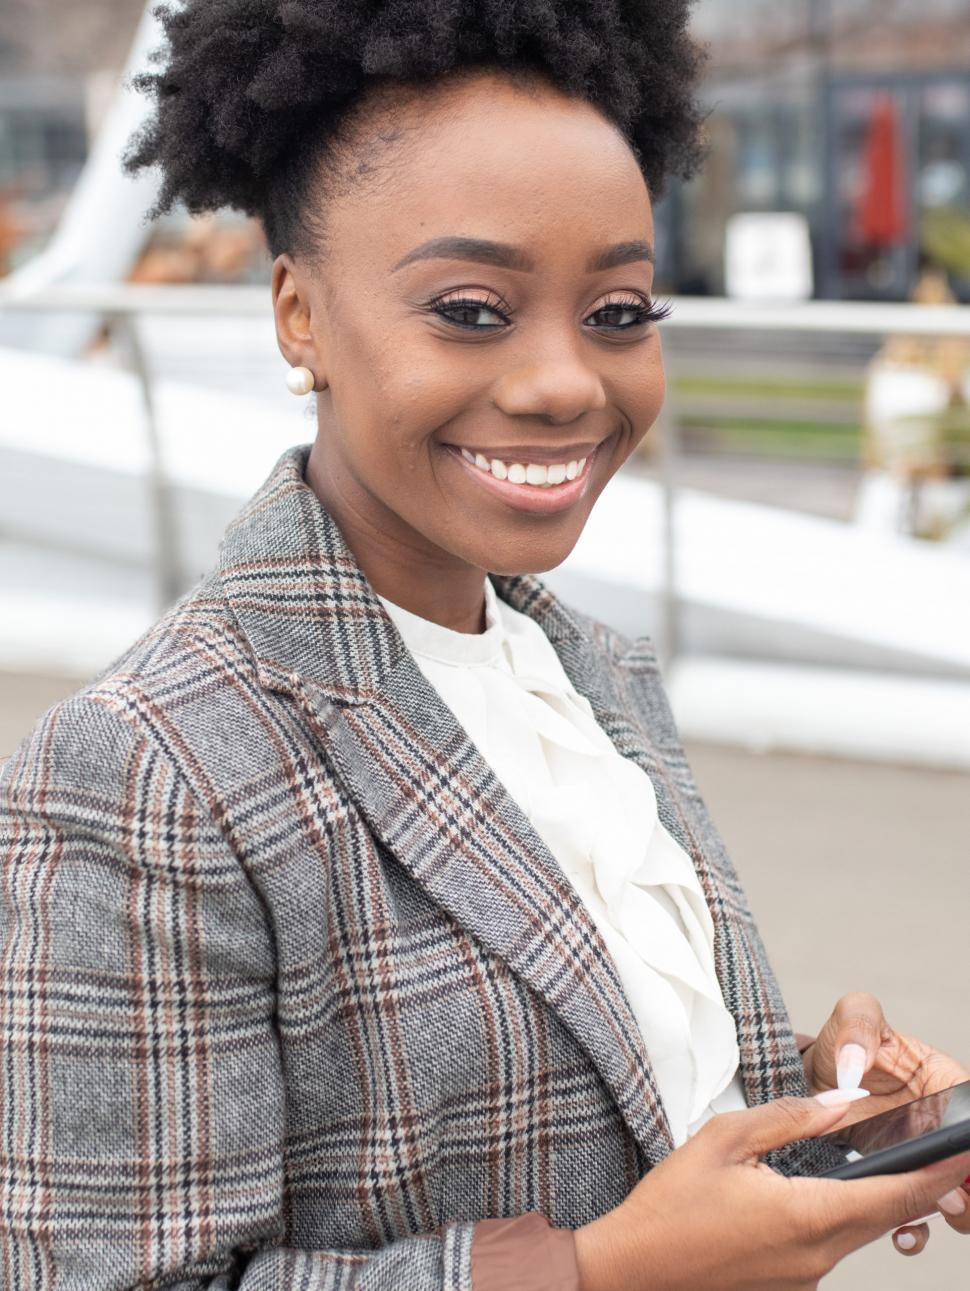 Download Free Stock Photo of Young smiling business woman in tweed blazer, with smartphone